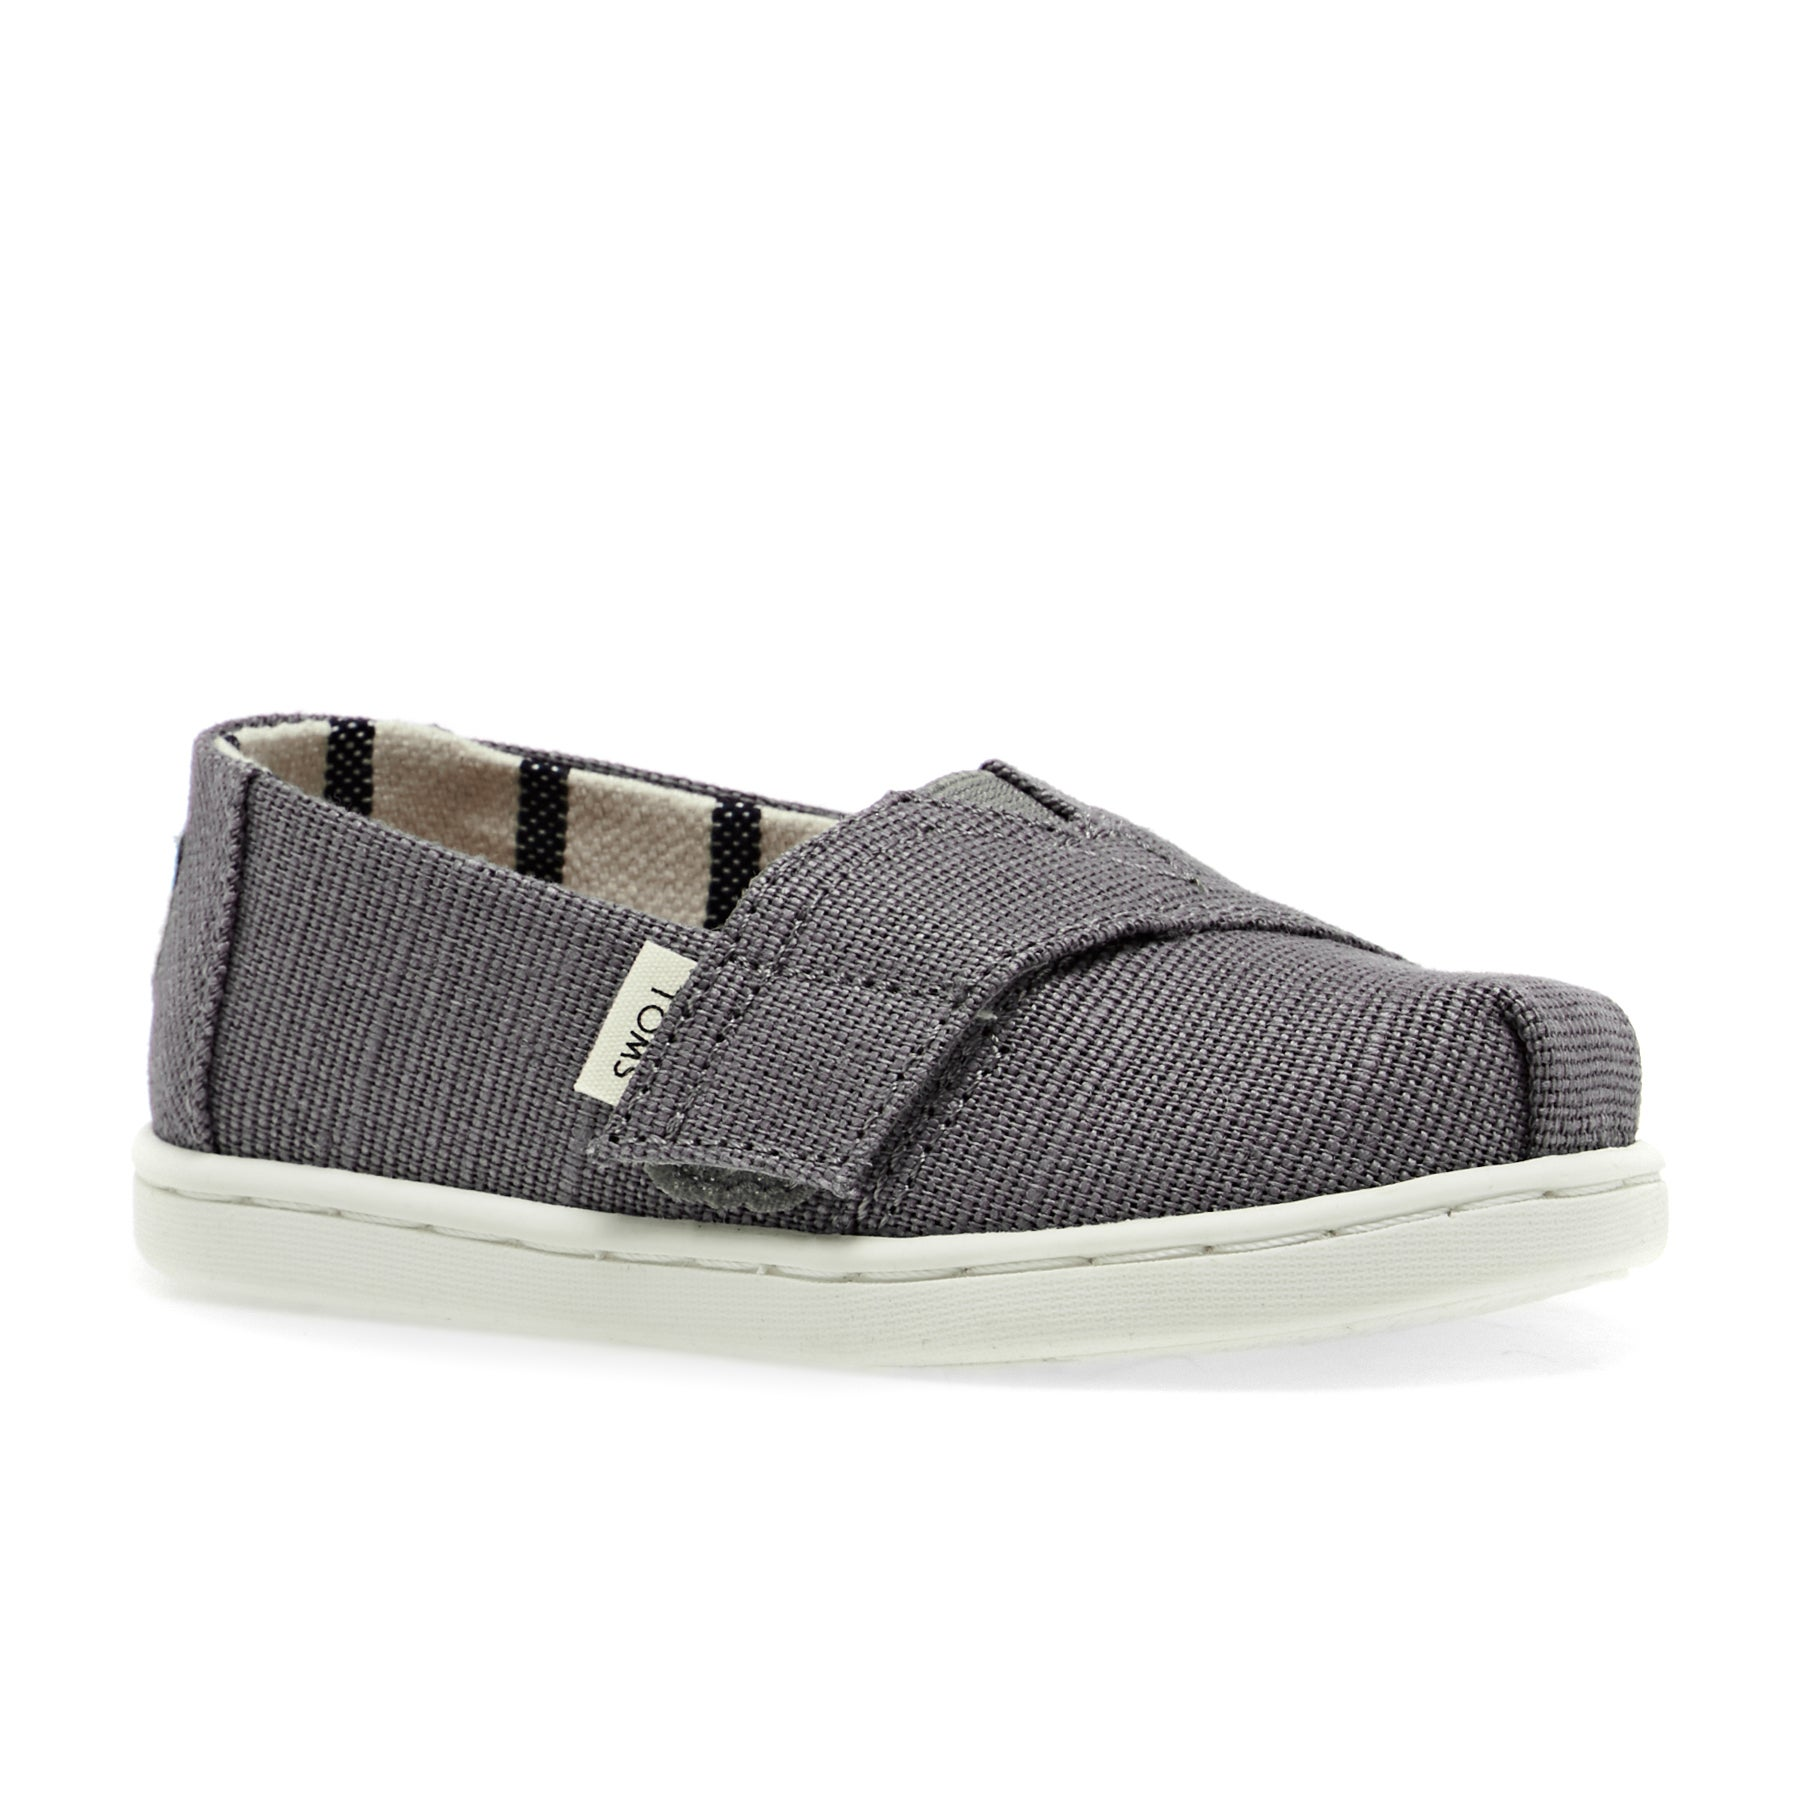 Toms Tiny Heritage Canvas Classic Kids Shoes - Shade Grey